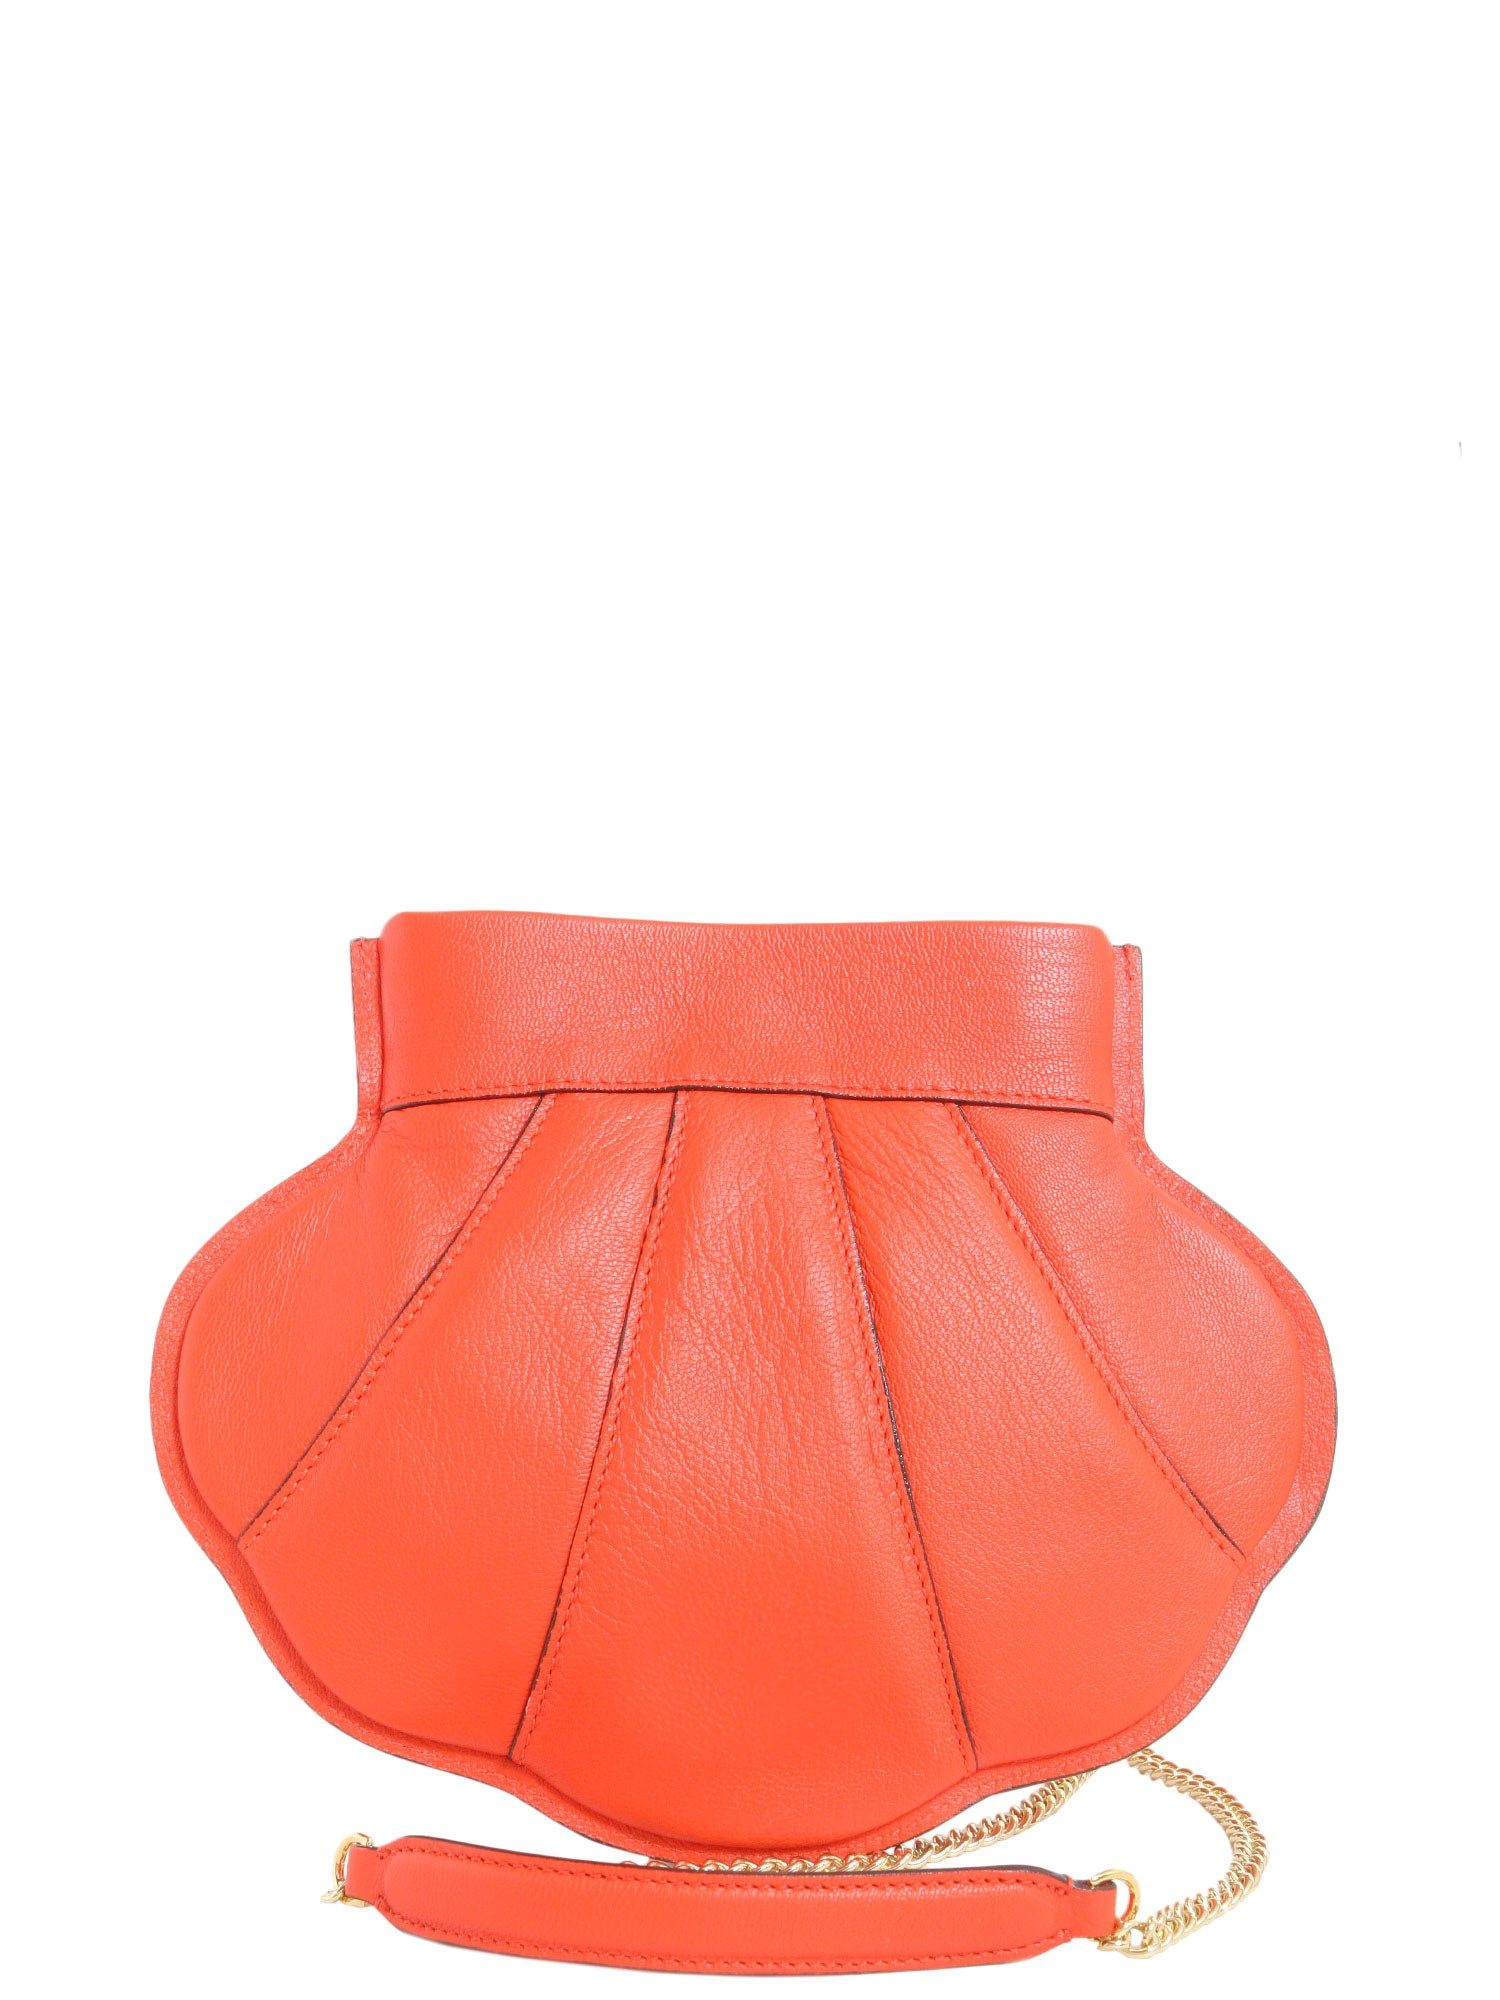 Shell Crossbody Bag